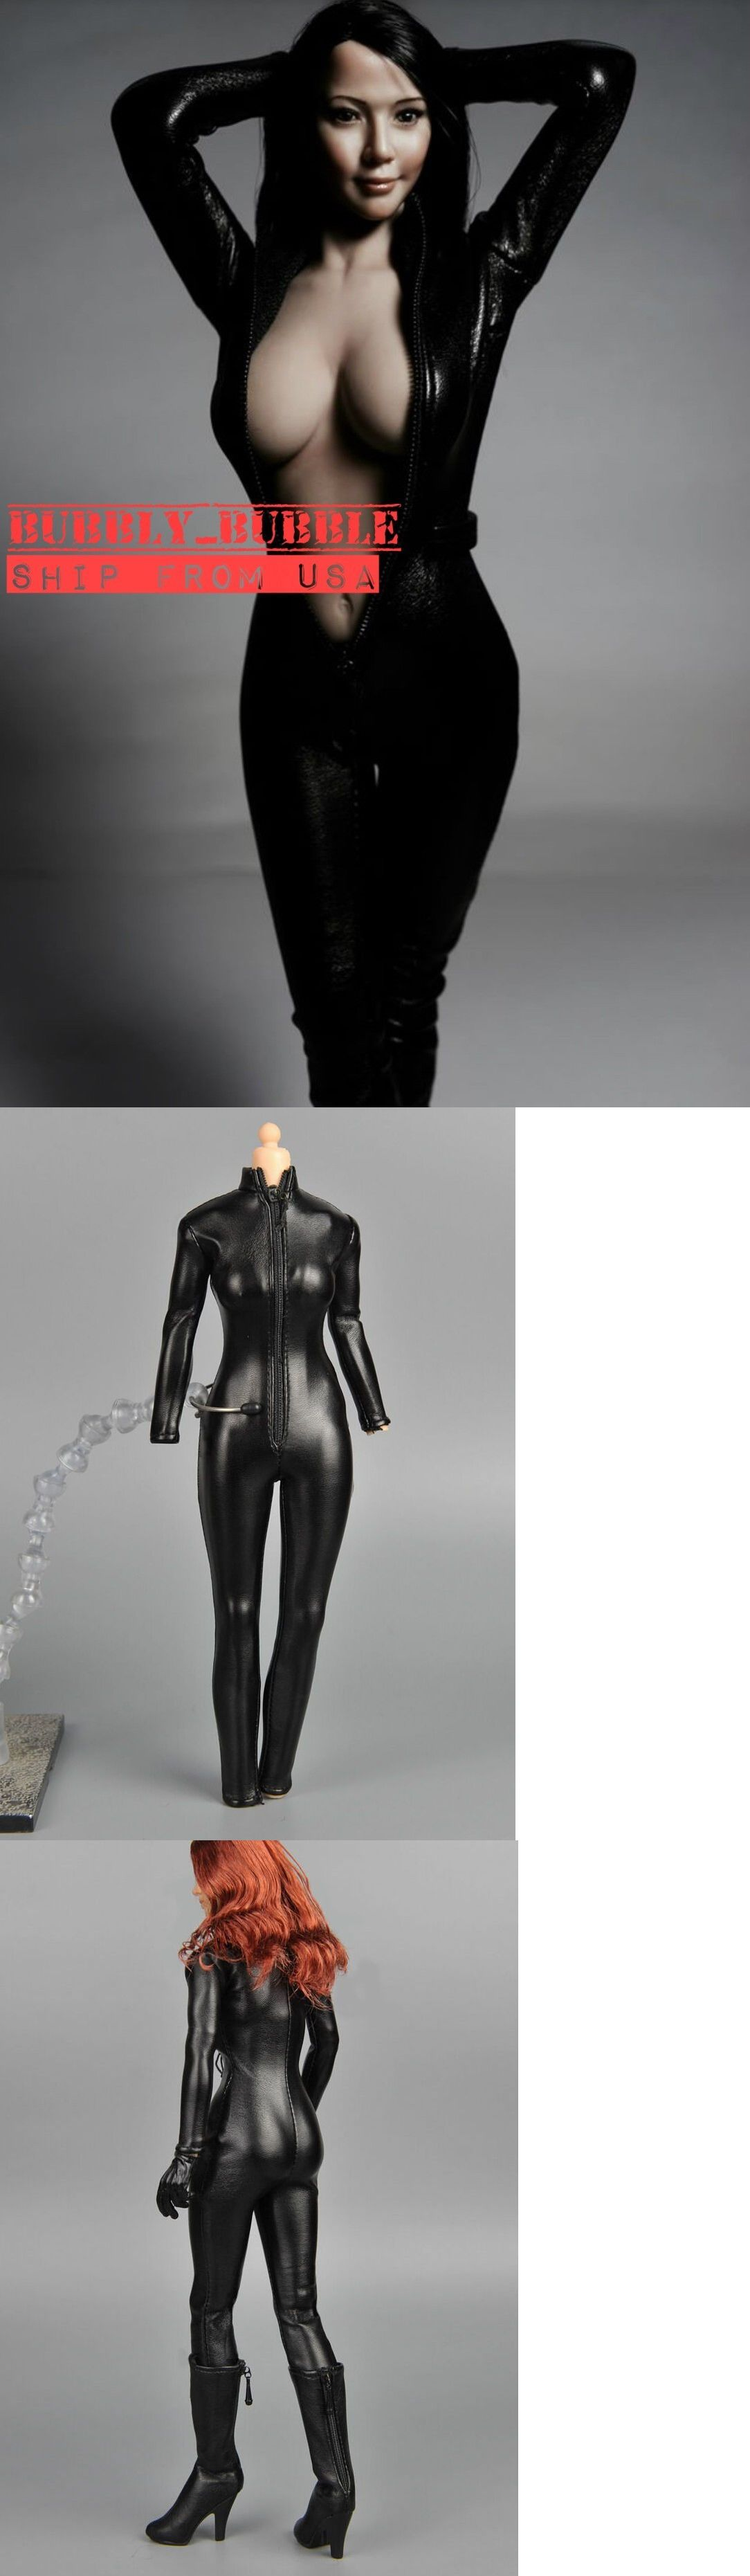 """1//6 One Piece Black Leather Jumpsuit For 12/"""" PHICEN Female Figure Doll ☆USA☆"""